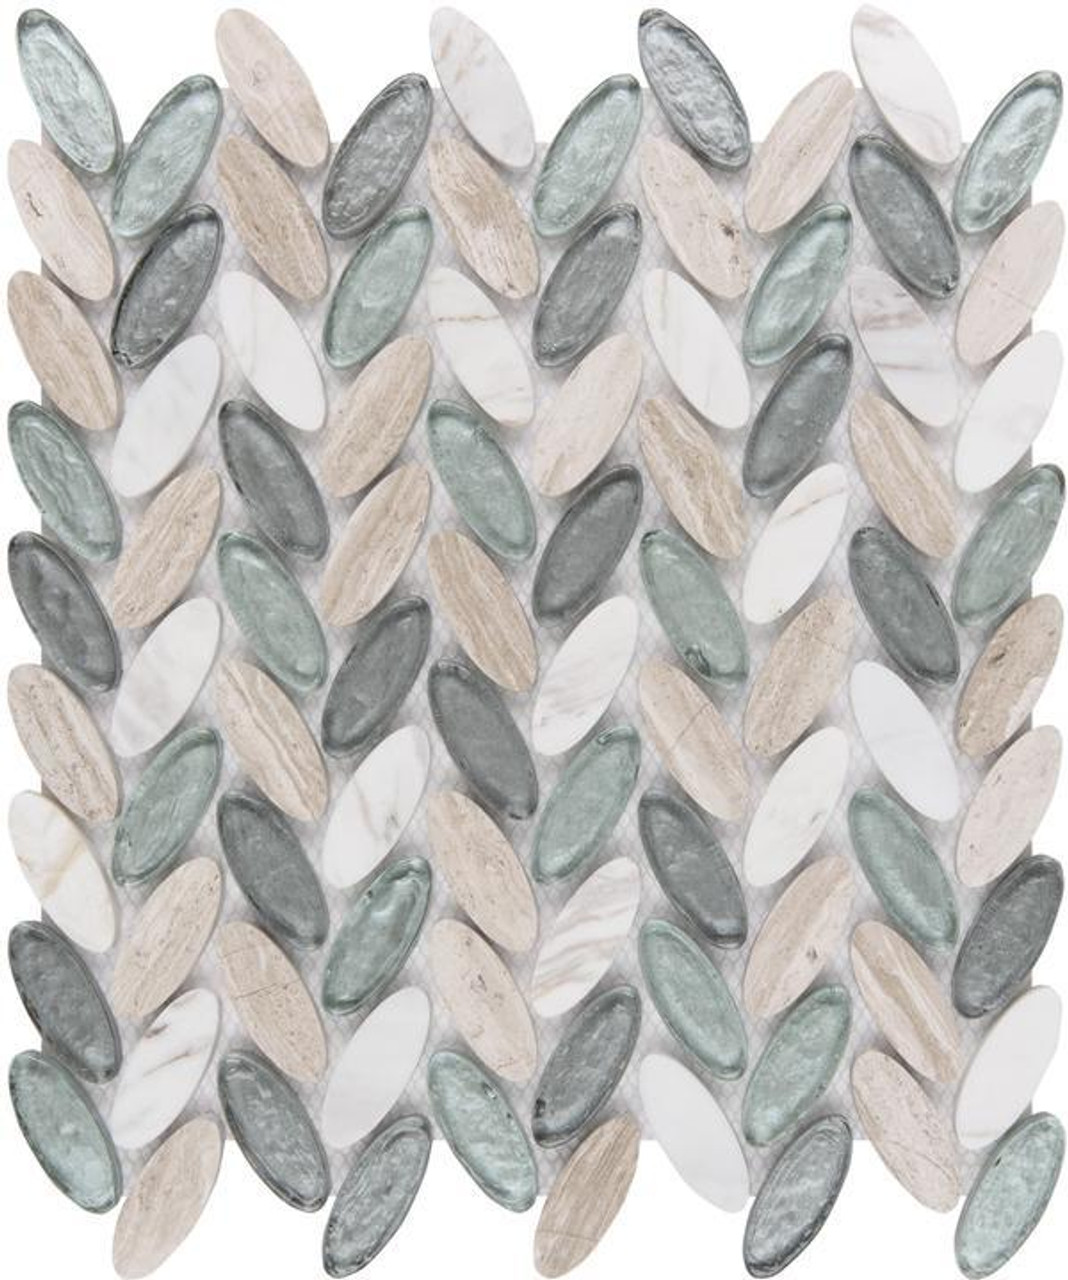 UBC Elyptic Herringbone Tile Glenaiden